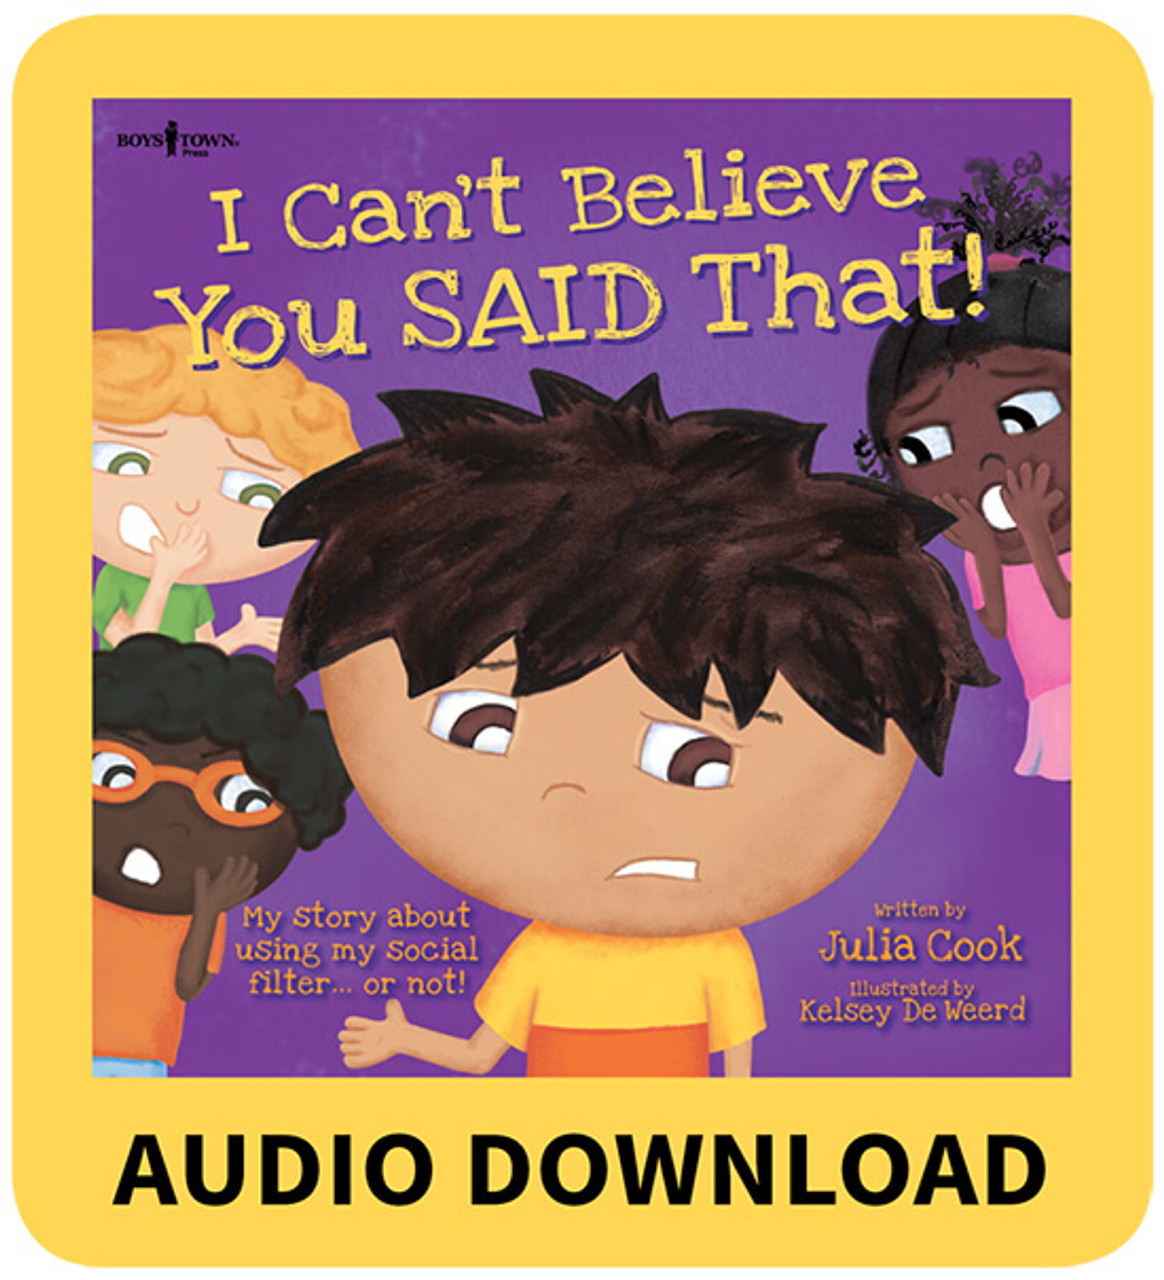 I Can't Believe You SAID That! Book with Audio Download